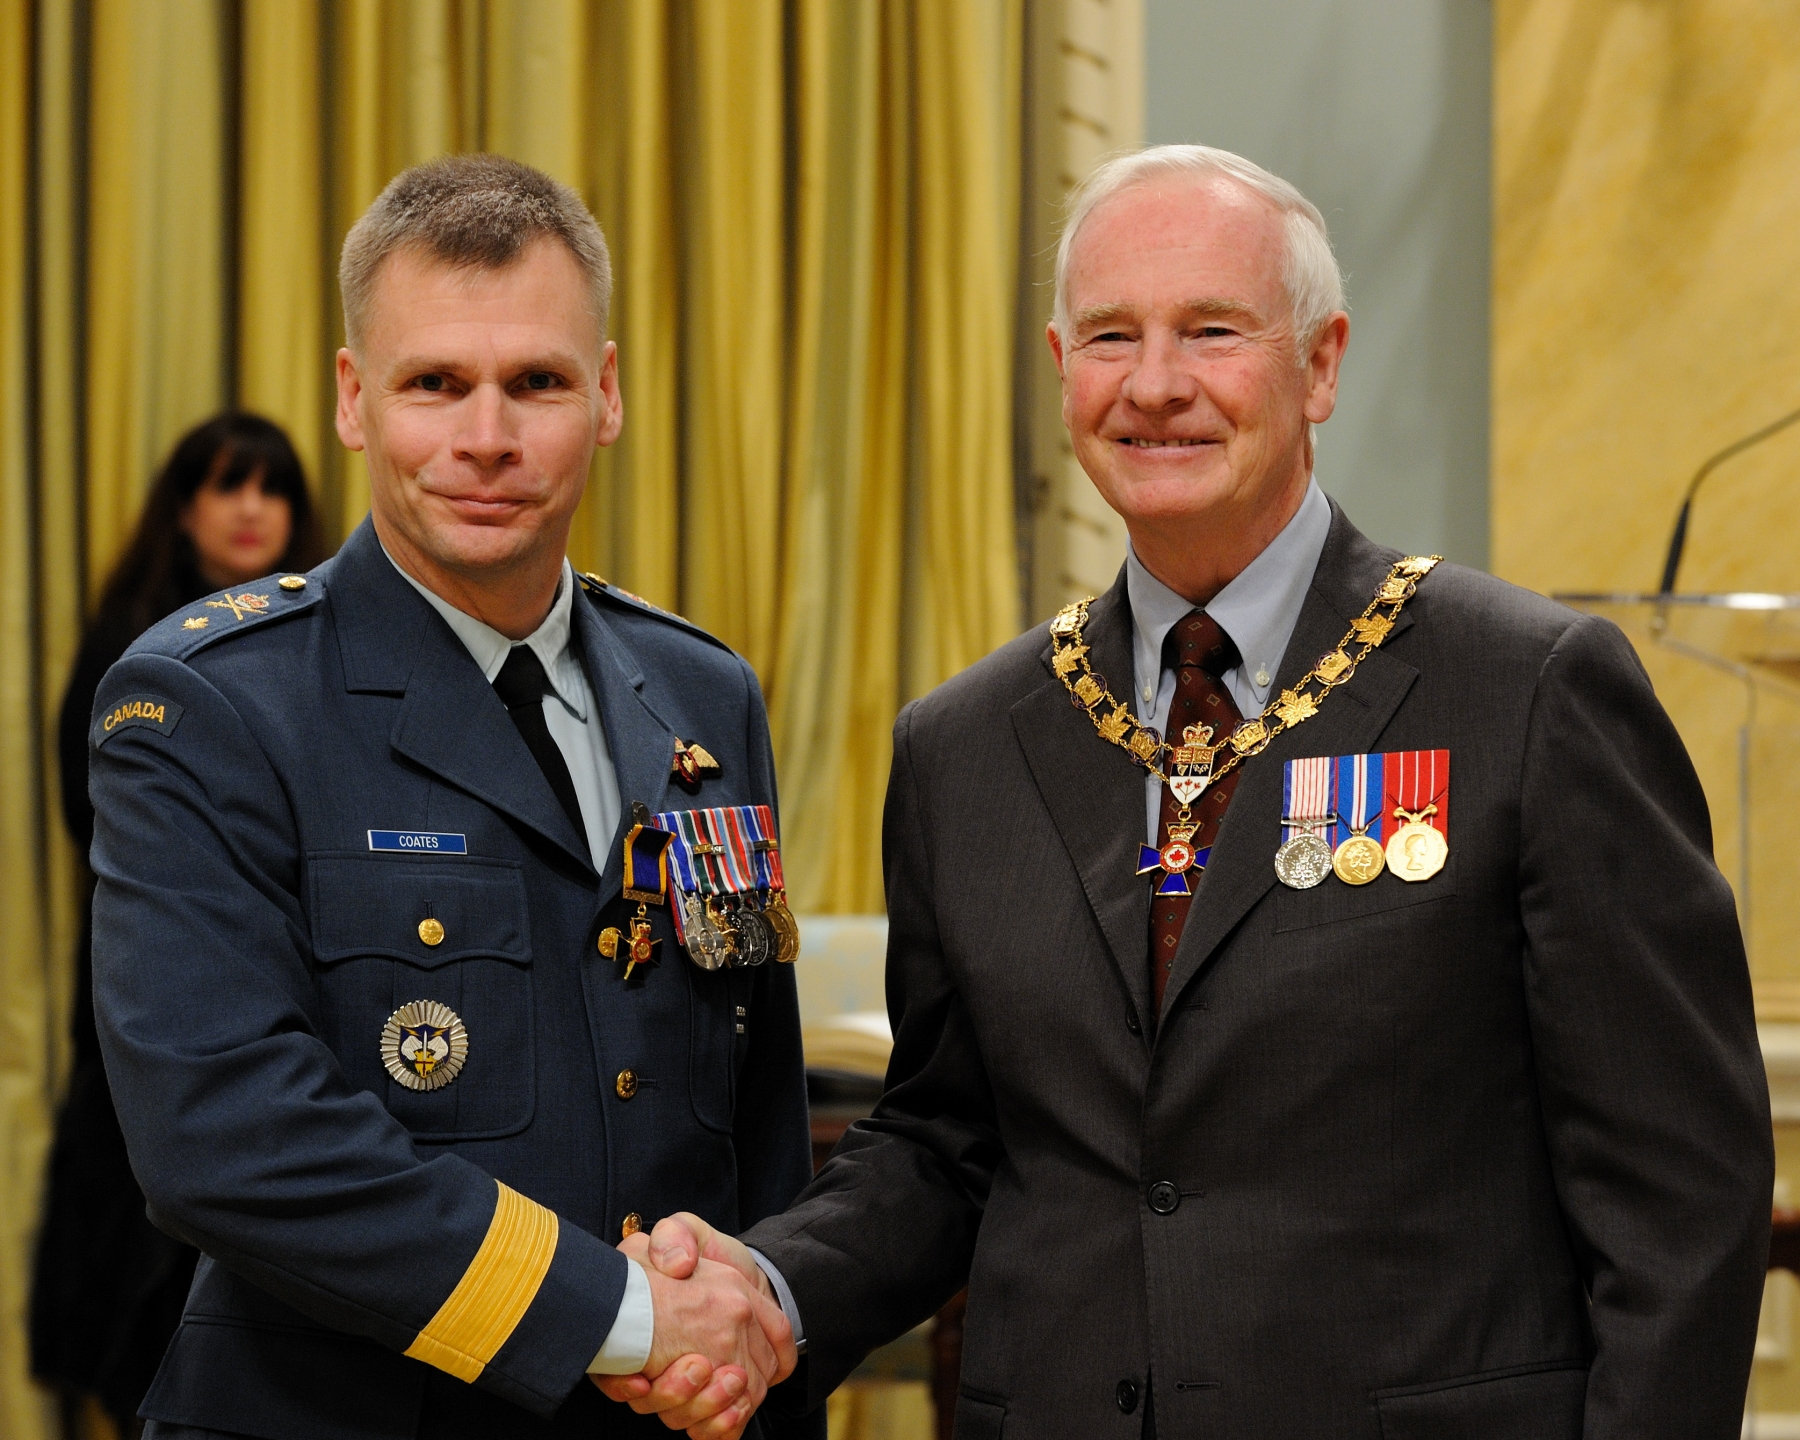 His Excellency presented the Order of Military Merit at the Officer level (O.M.M.) to Colonel Christopher Coates, O.M.M., M.S.M., C.D., Joint Task Force Afghanistan, Kandahar, Afghanistan.